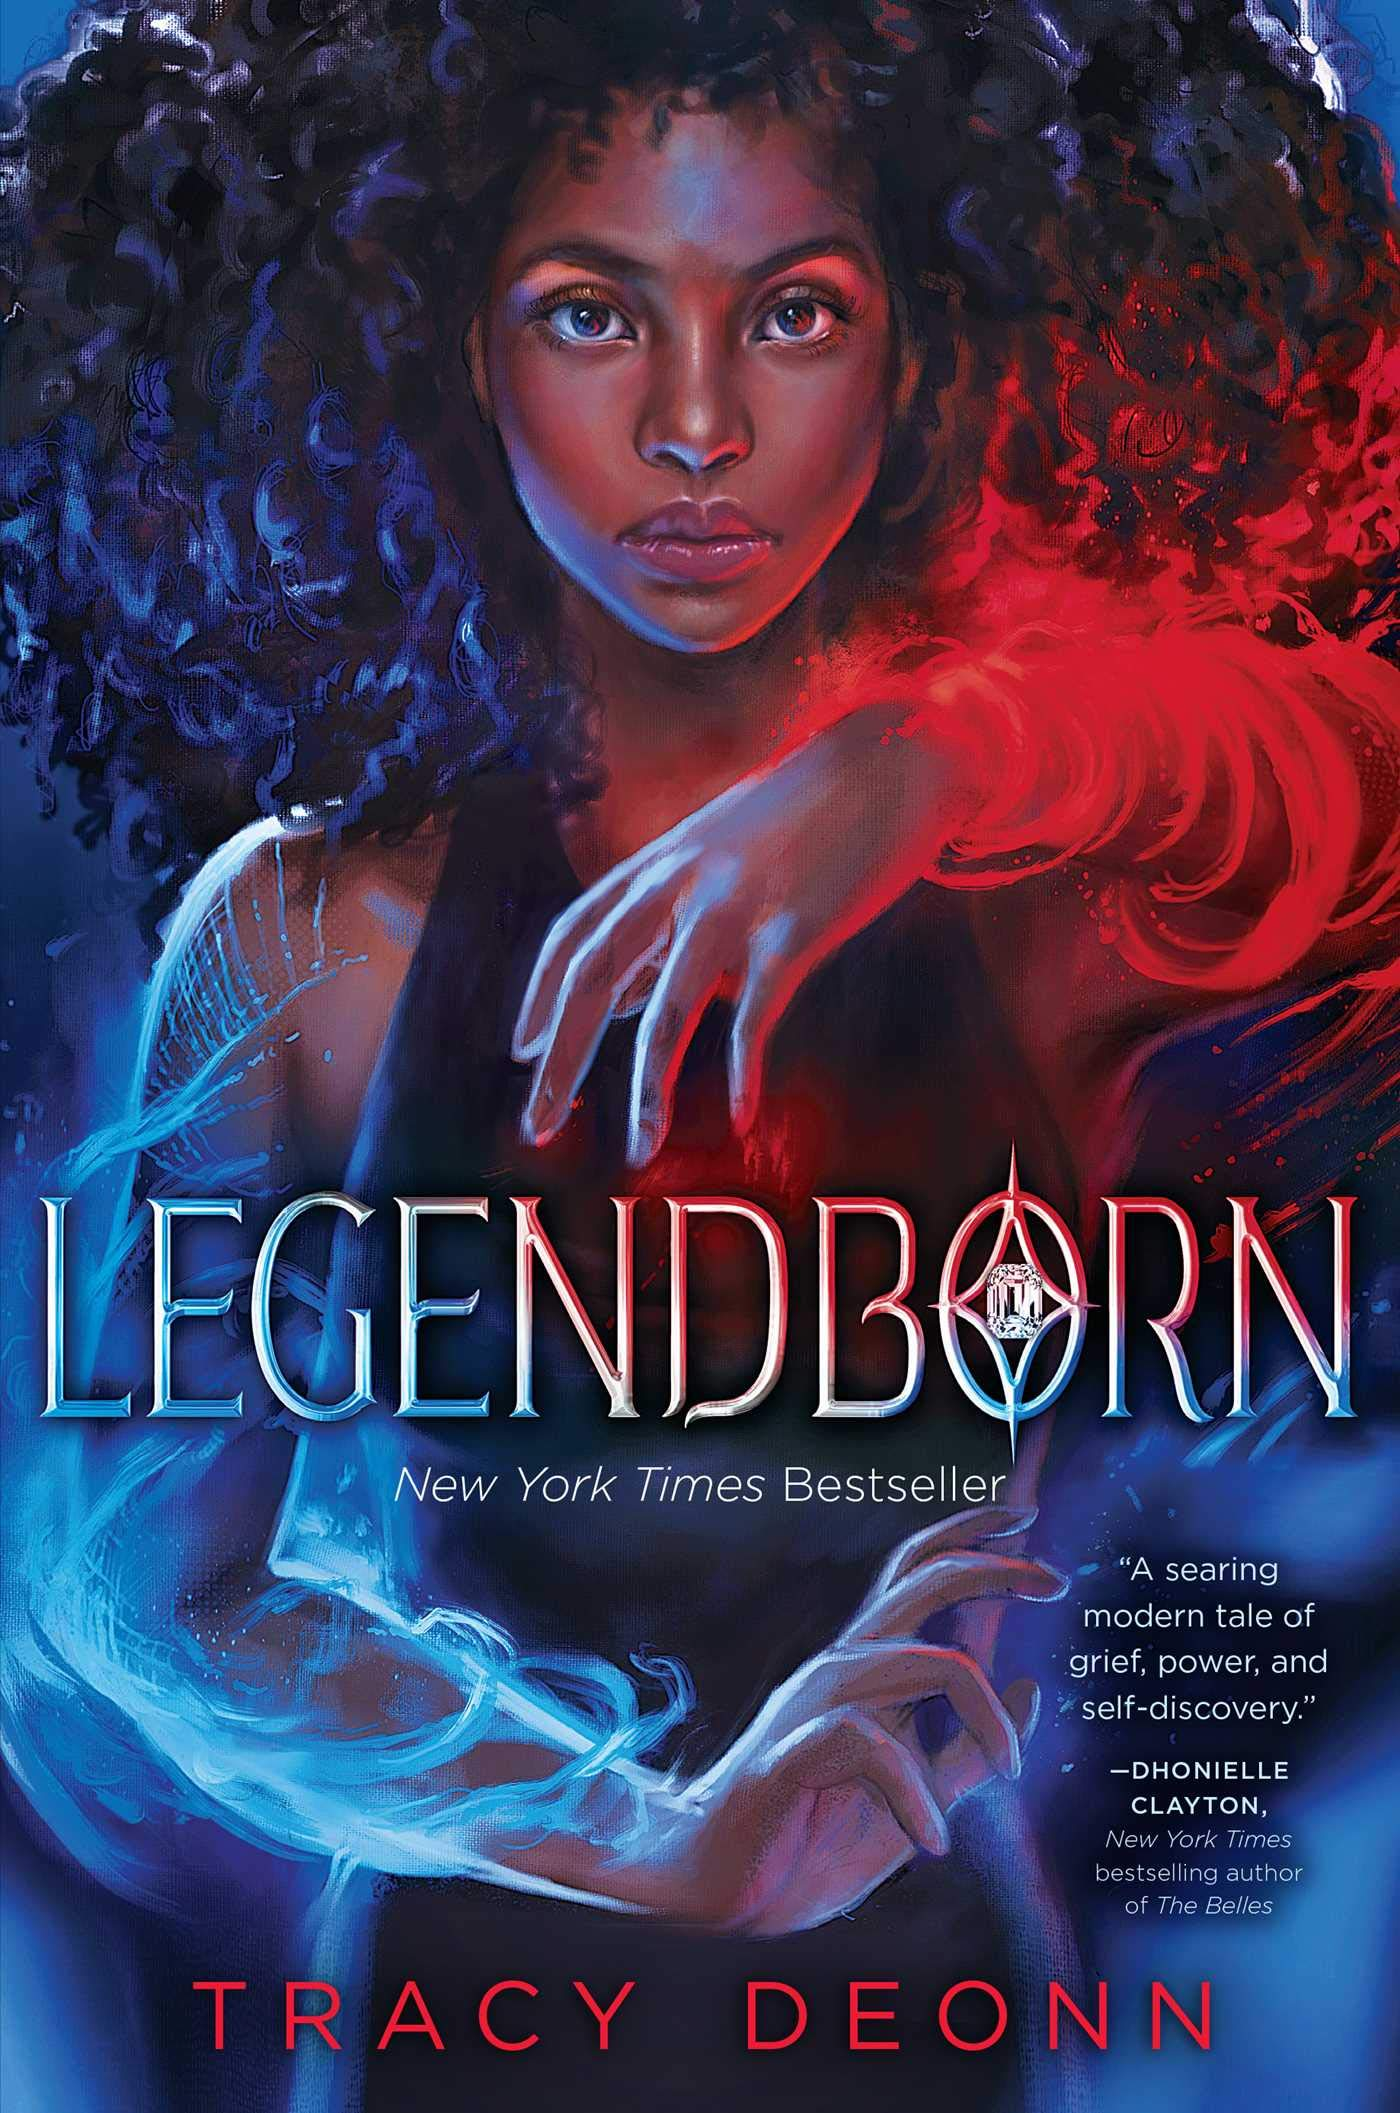 Amazon.com: Legendborn (9781534441606): Deonn, Tracy: Books